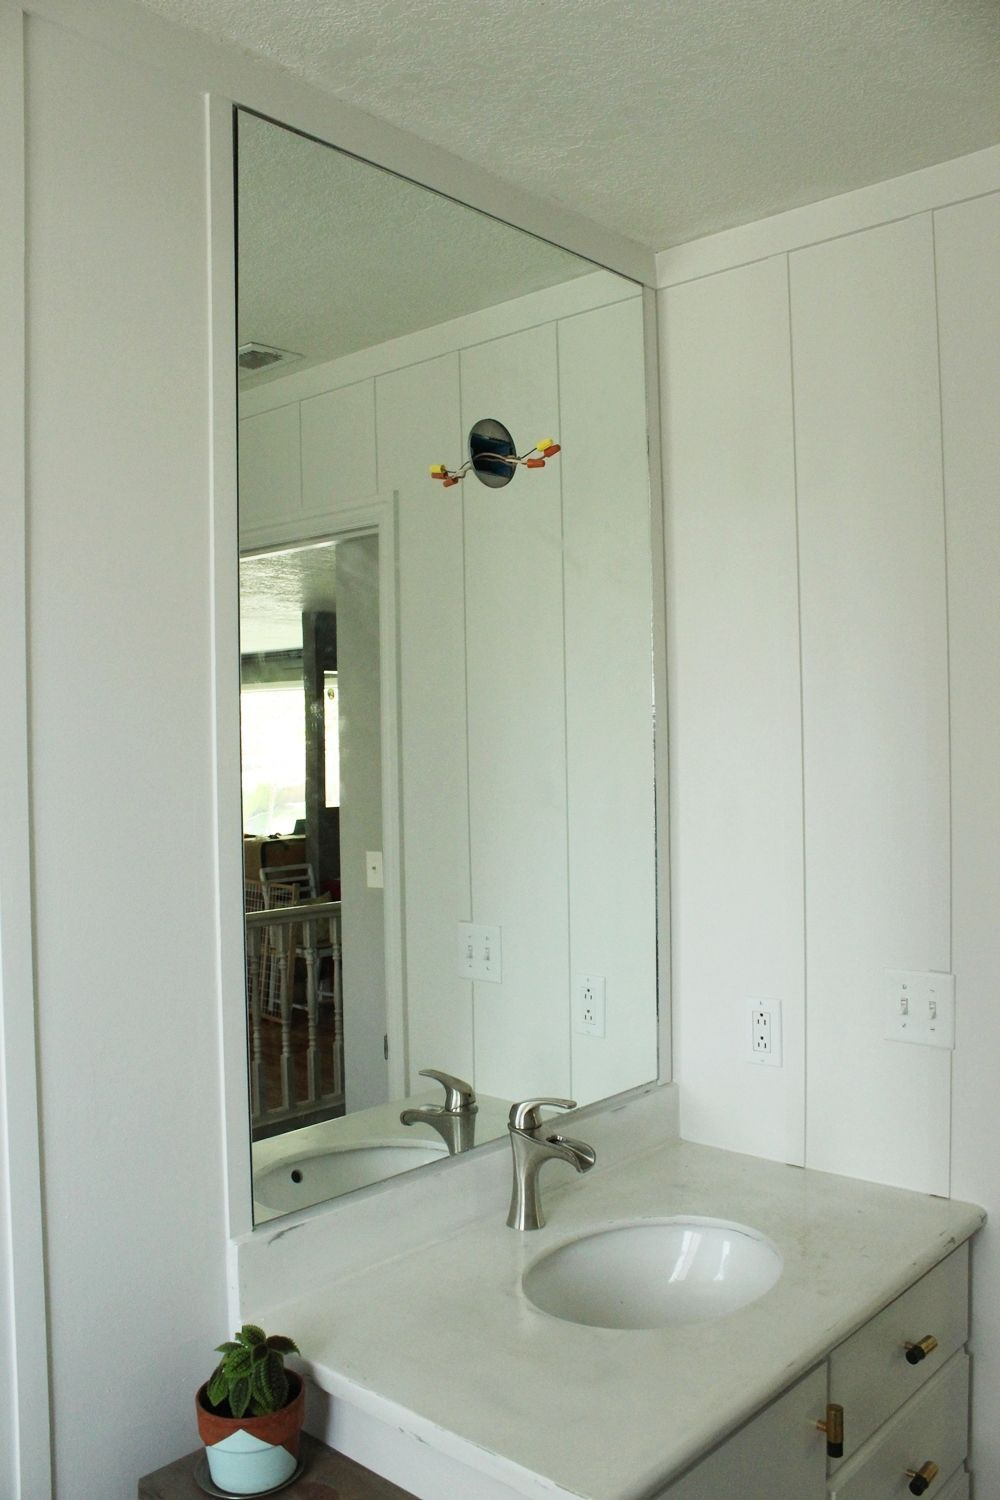 DIY Prof Install Mirror for Bathroom